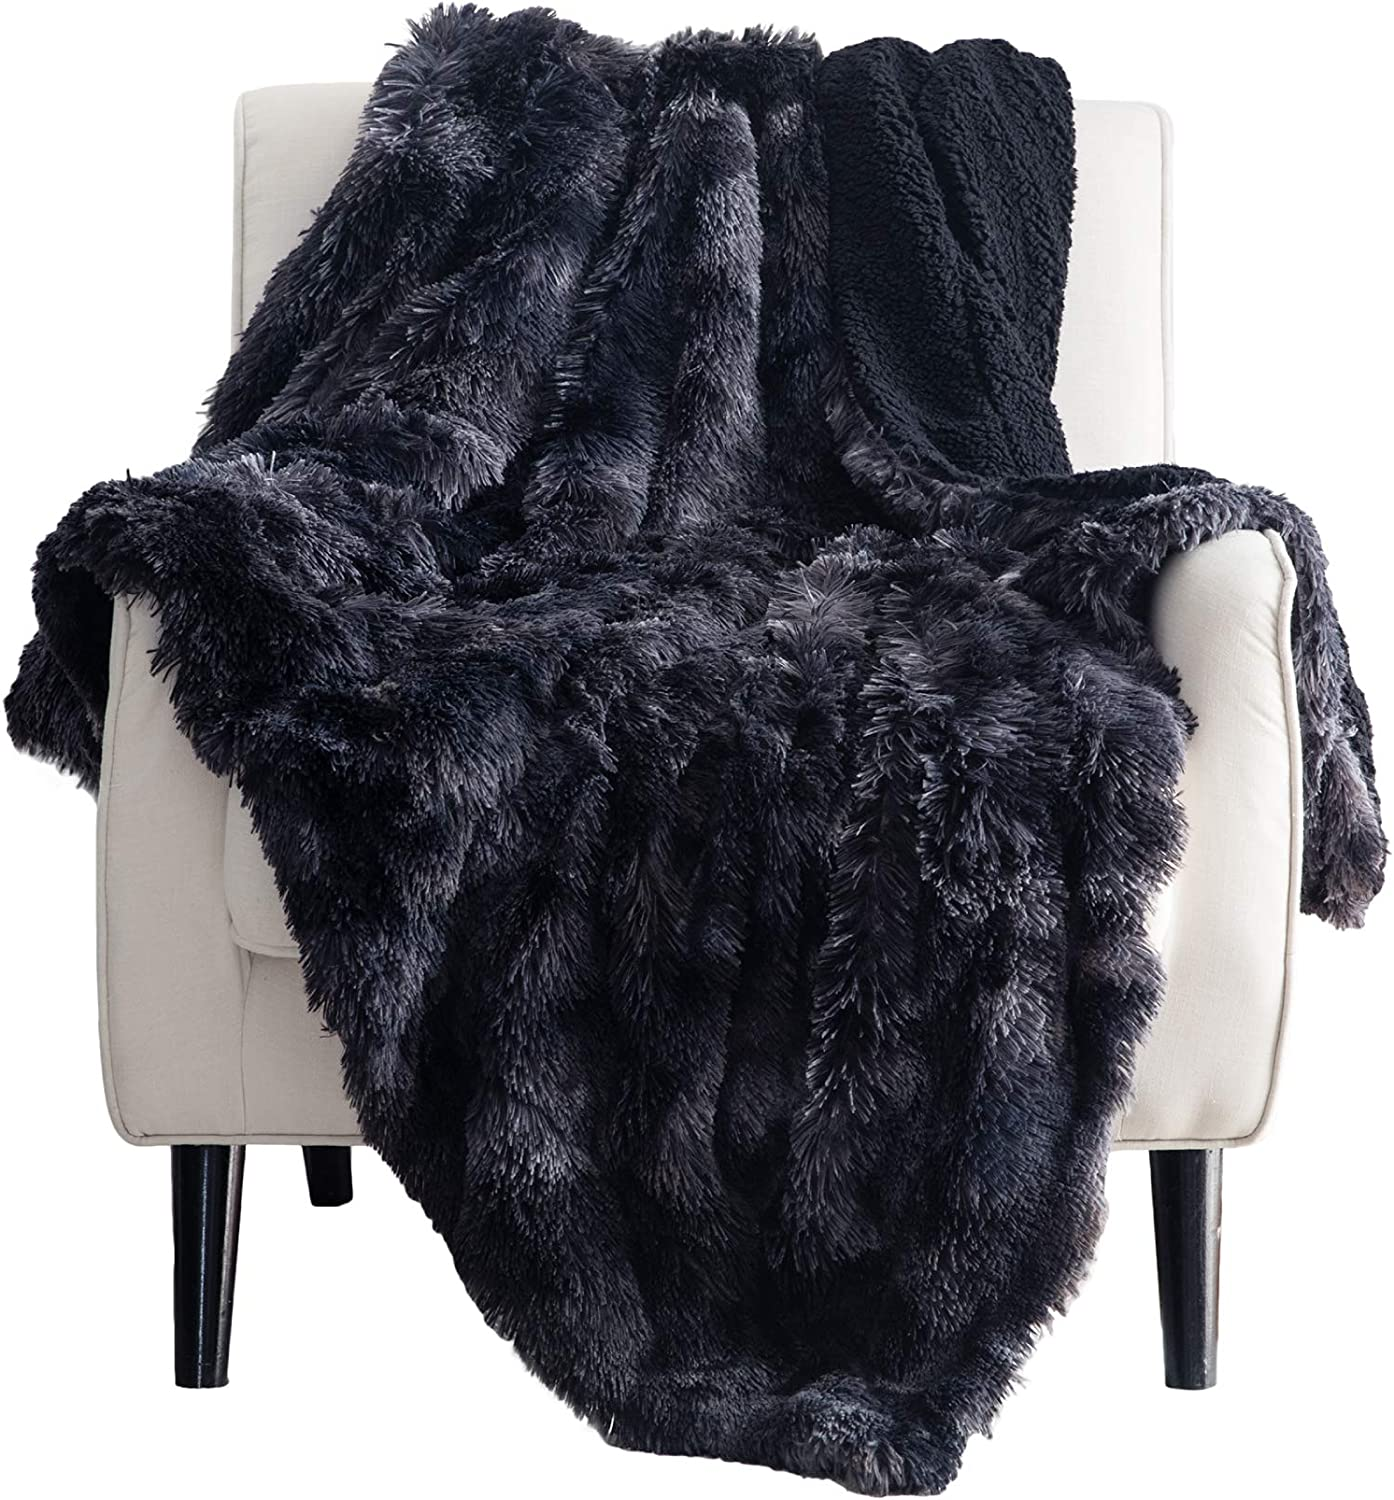 Bedsure Soft Fuzzy Faux Fur Sherpa Fleece Queen Size Throw Blanket Black- Warm Thick Fluffy Plush Cozy Reversible Shaggy Blanket for Sofa and Bed -Comfy Furry Blanket,Full 90x90 inches